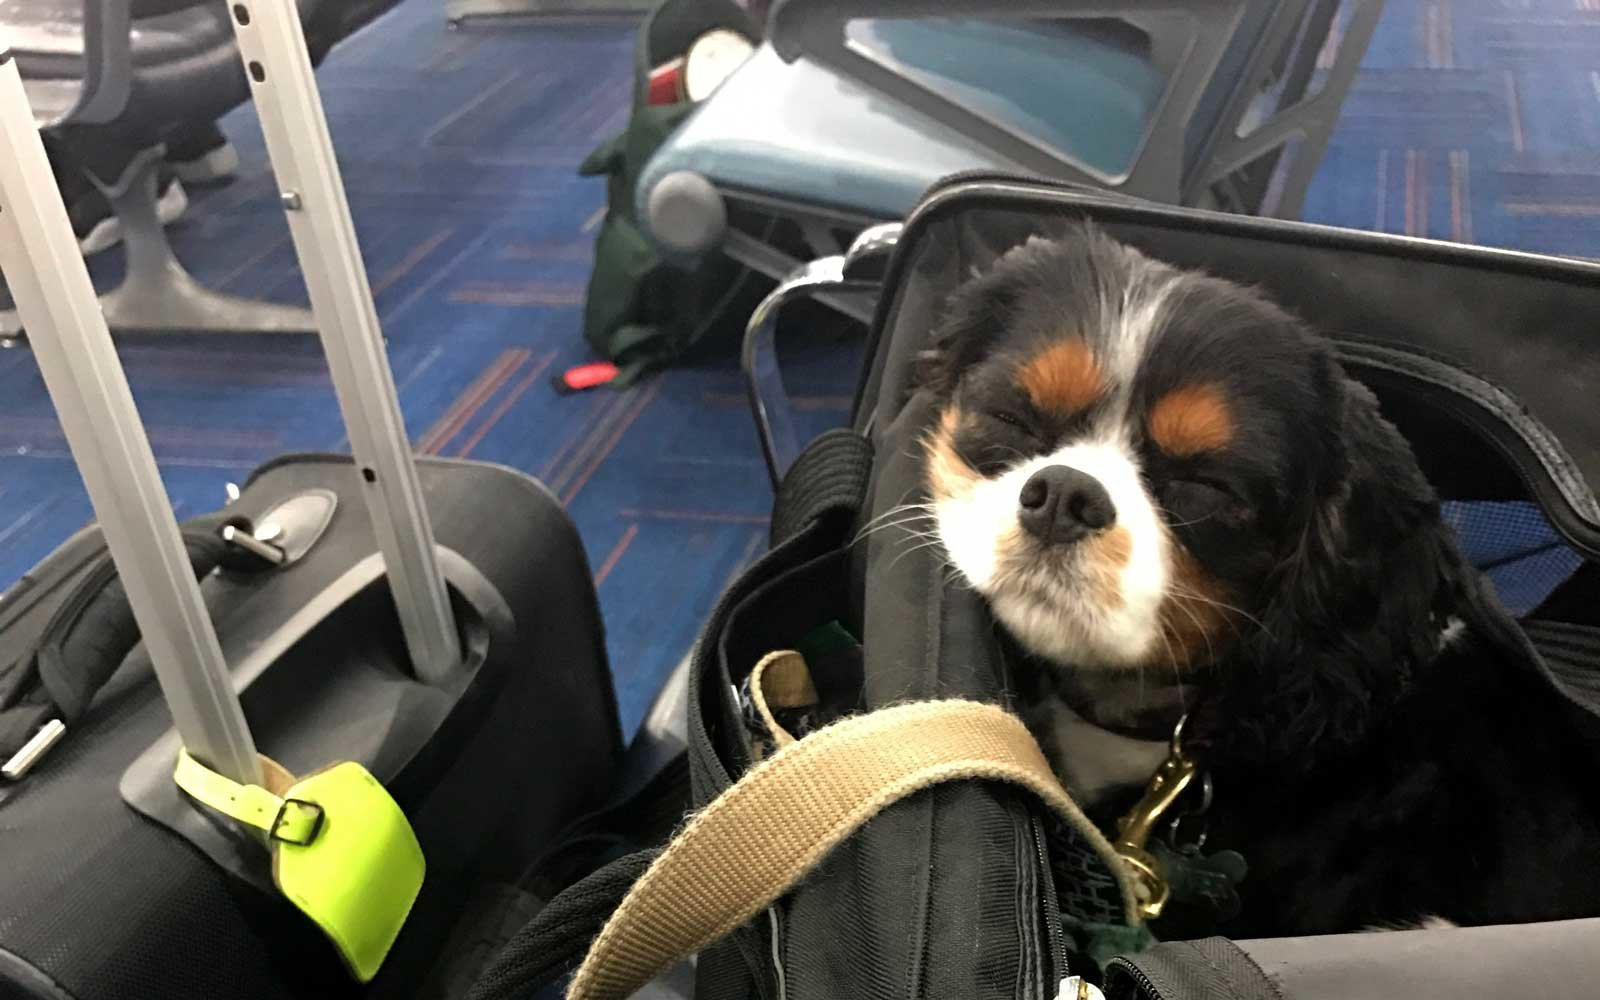 Emotional Support dog in bag at the airport